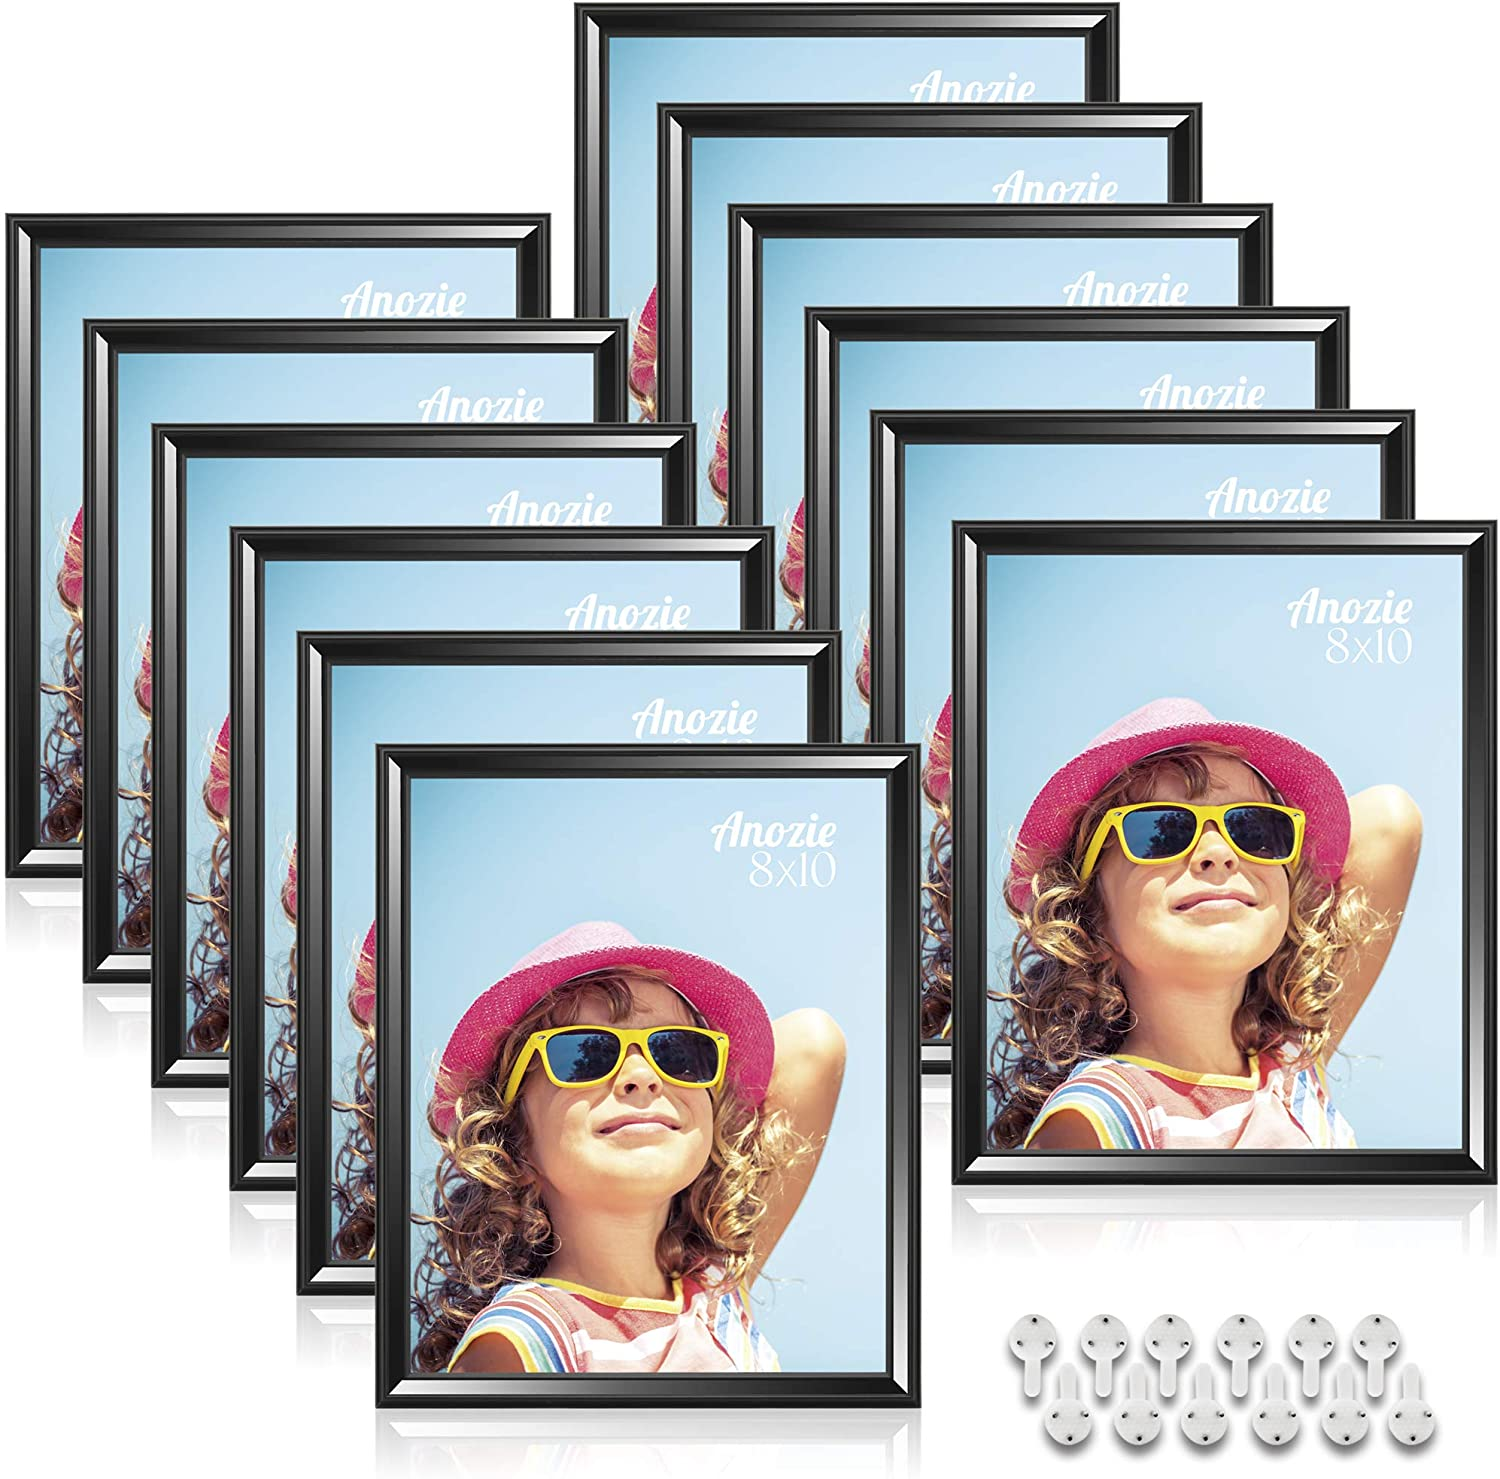 Anozie 8X10 Picture Frames(12 Pack,Black) Simple Line Moulding Photo Frame Set with HD Real Glass for Tabletop or Wall Mount Display, Minimalist Collection (Black, 8X10)